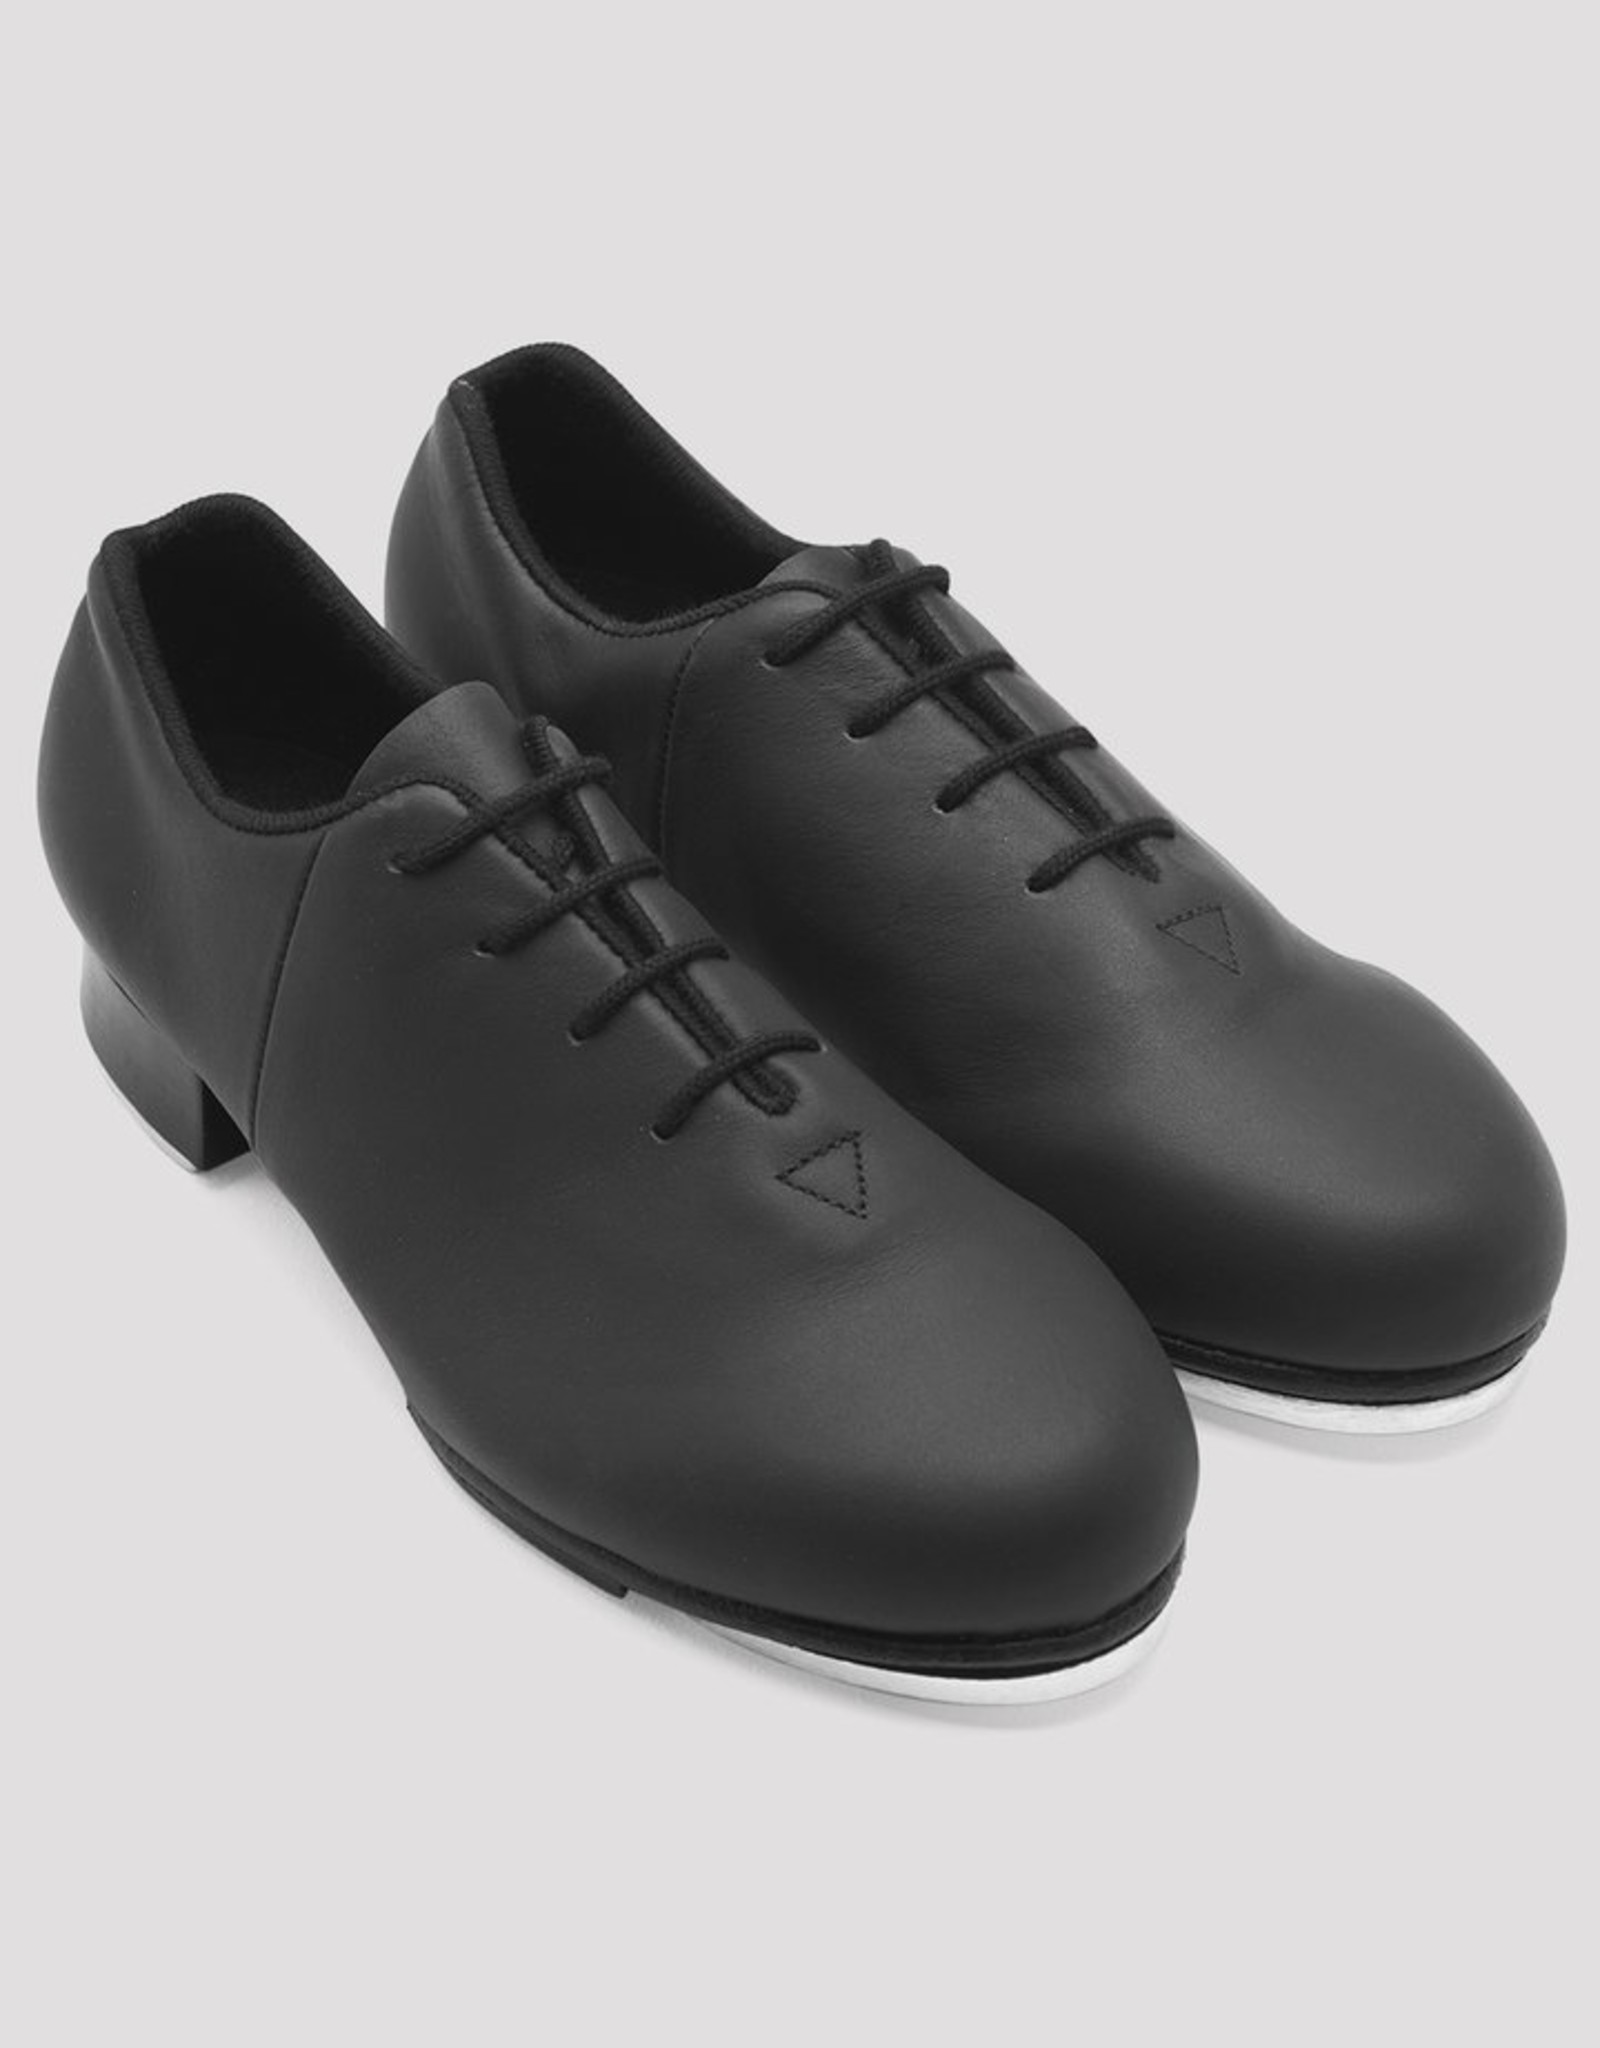 BLOCH TAP FLEX LEATHER TAP SHOES (SO388)